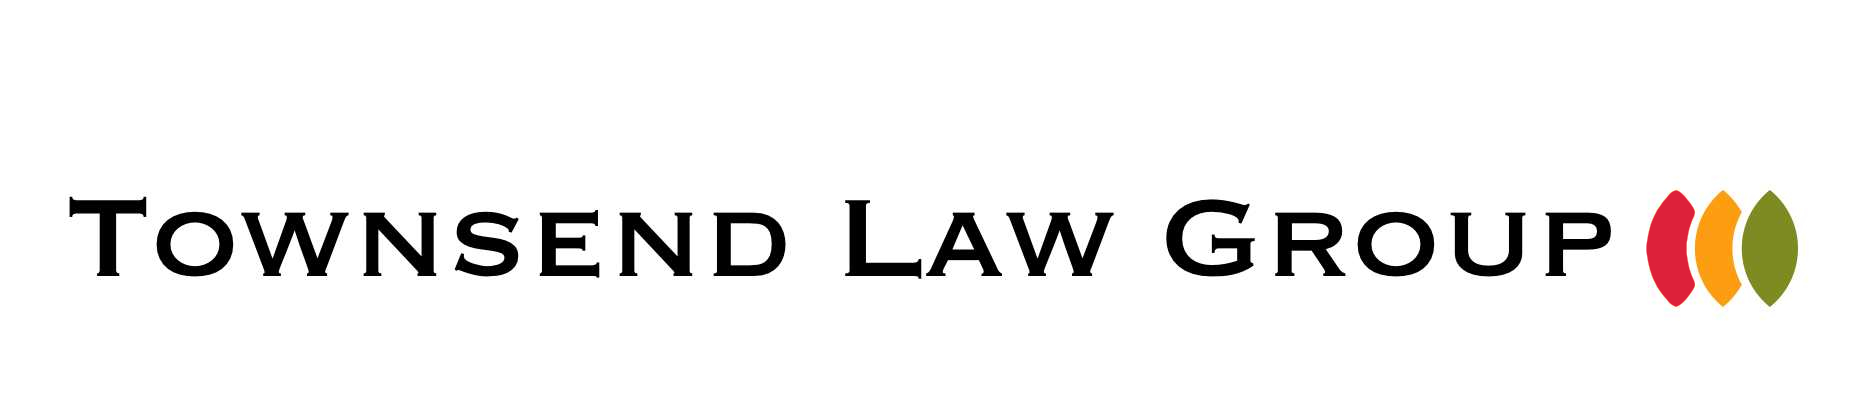 About the Townsend Law Group, copyright and trademark lawyers in ...